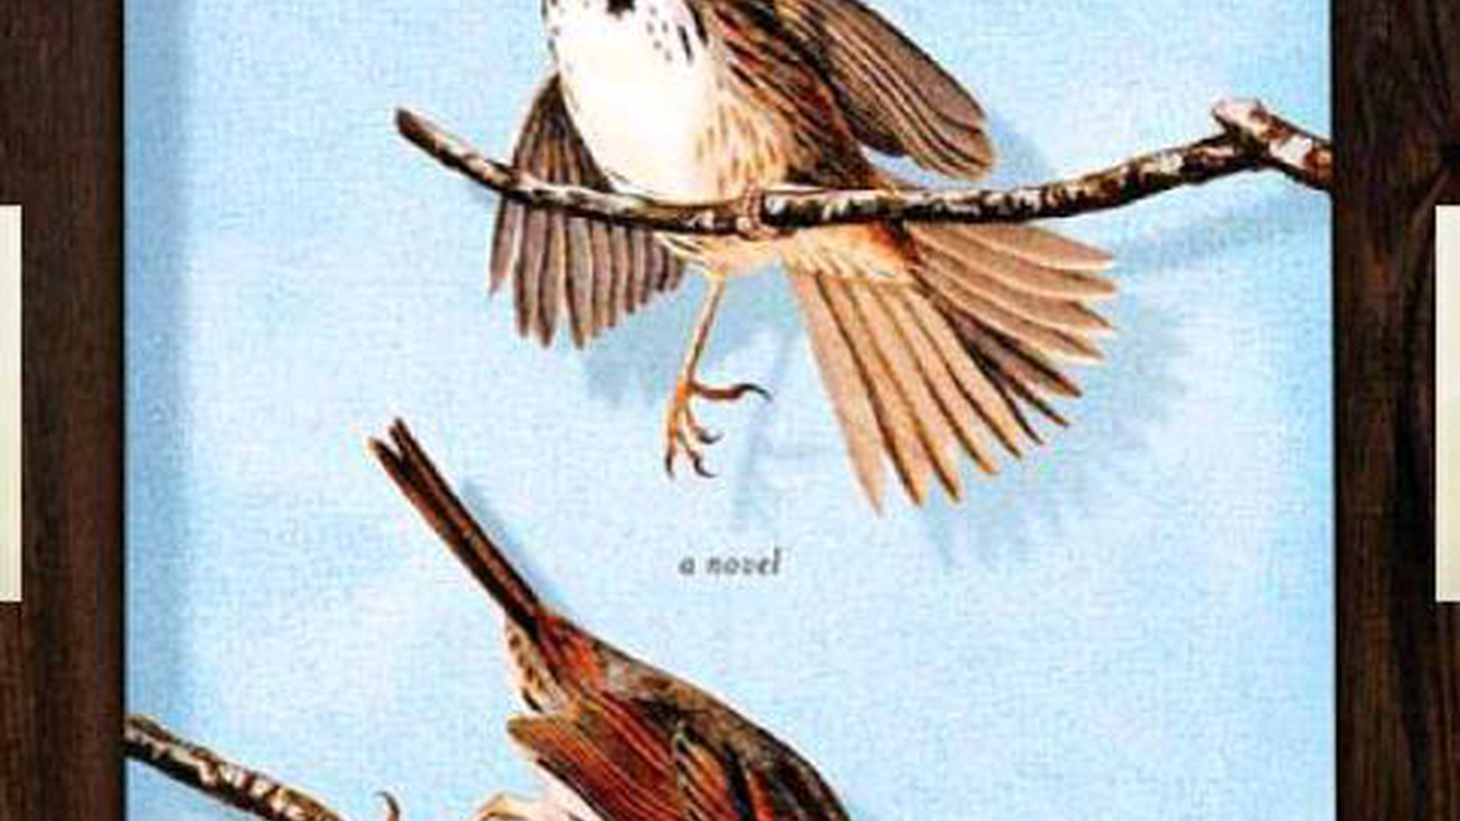 Laura Jacobs has a luminous eye for detail, social and physical. It can be glimpsed in her writings on fashion and culture or in her novels, such as her newest, The Bird Catcher.